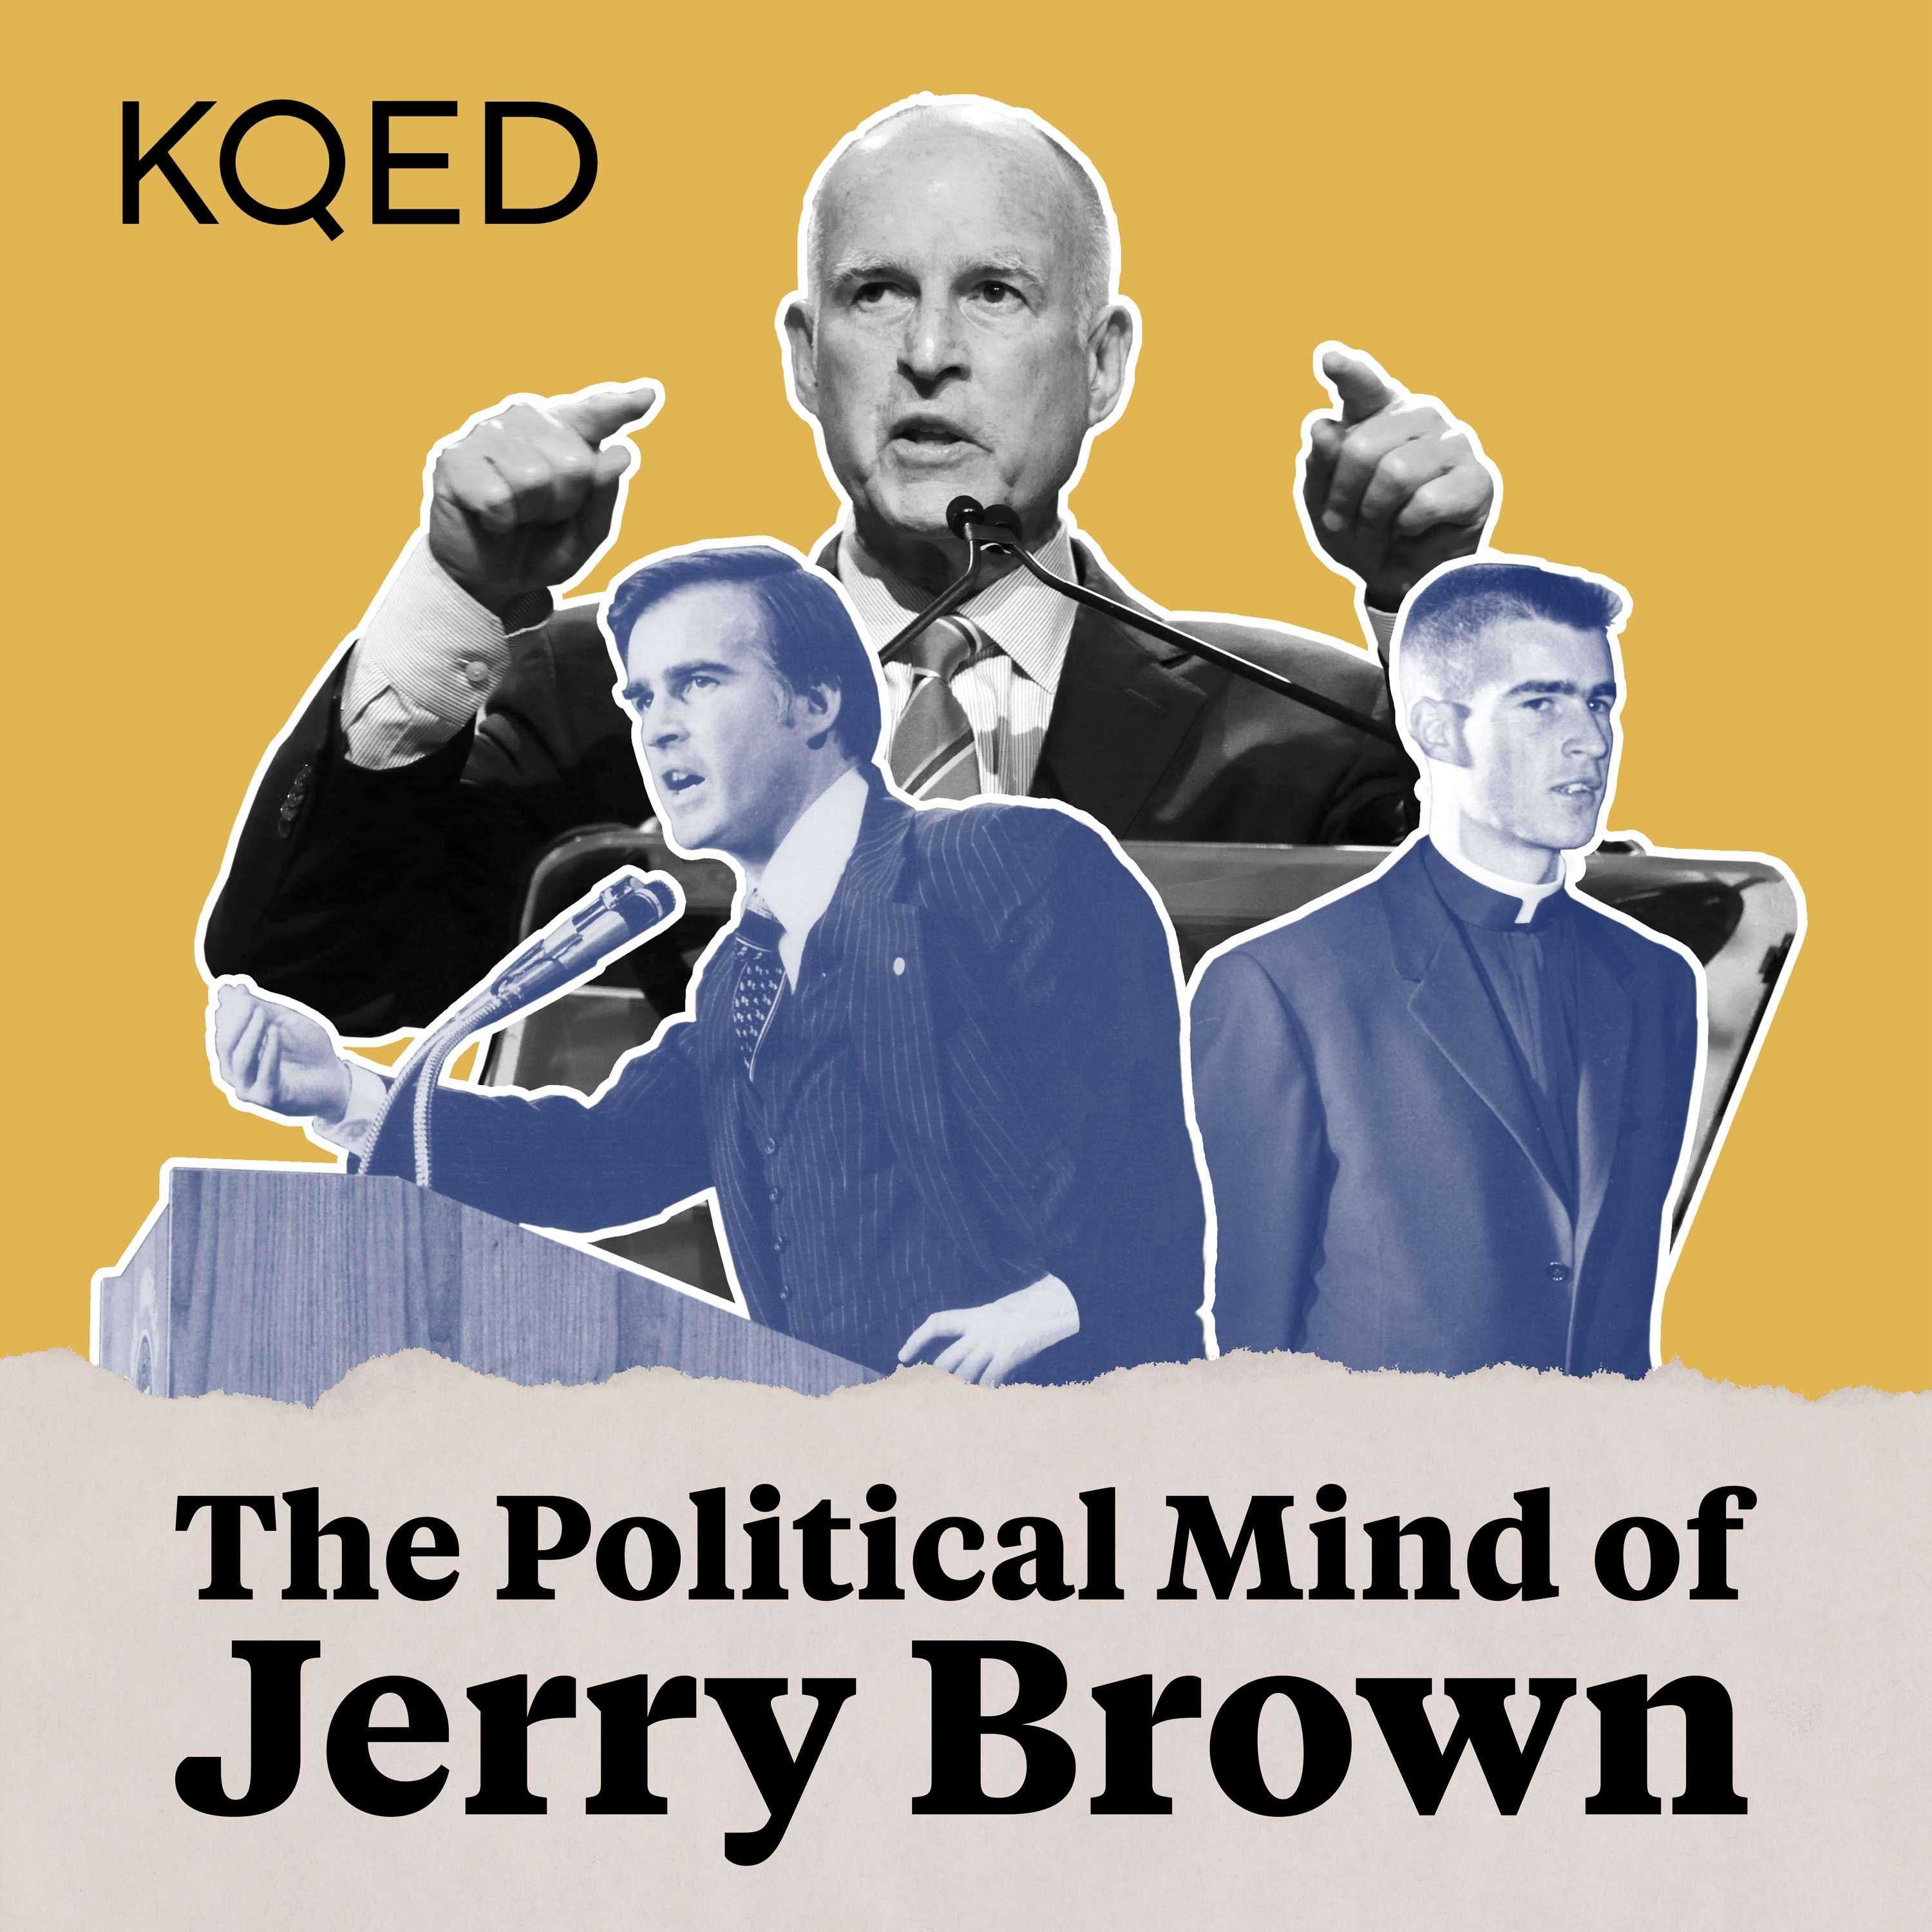 Introducing The Political Mind of Jerry Brown